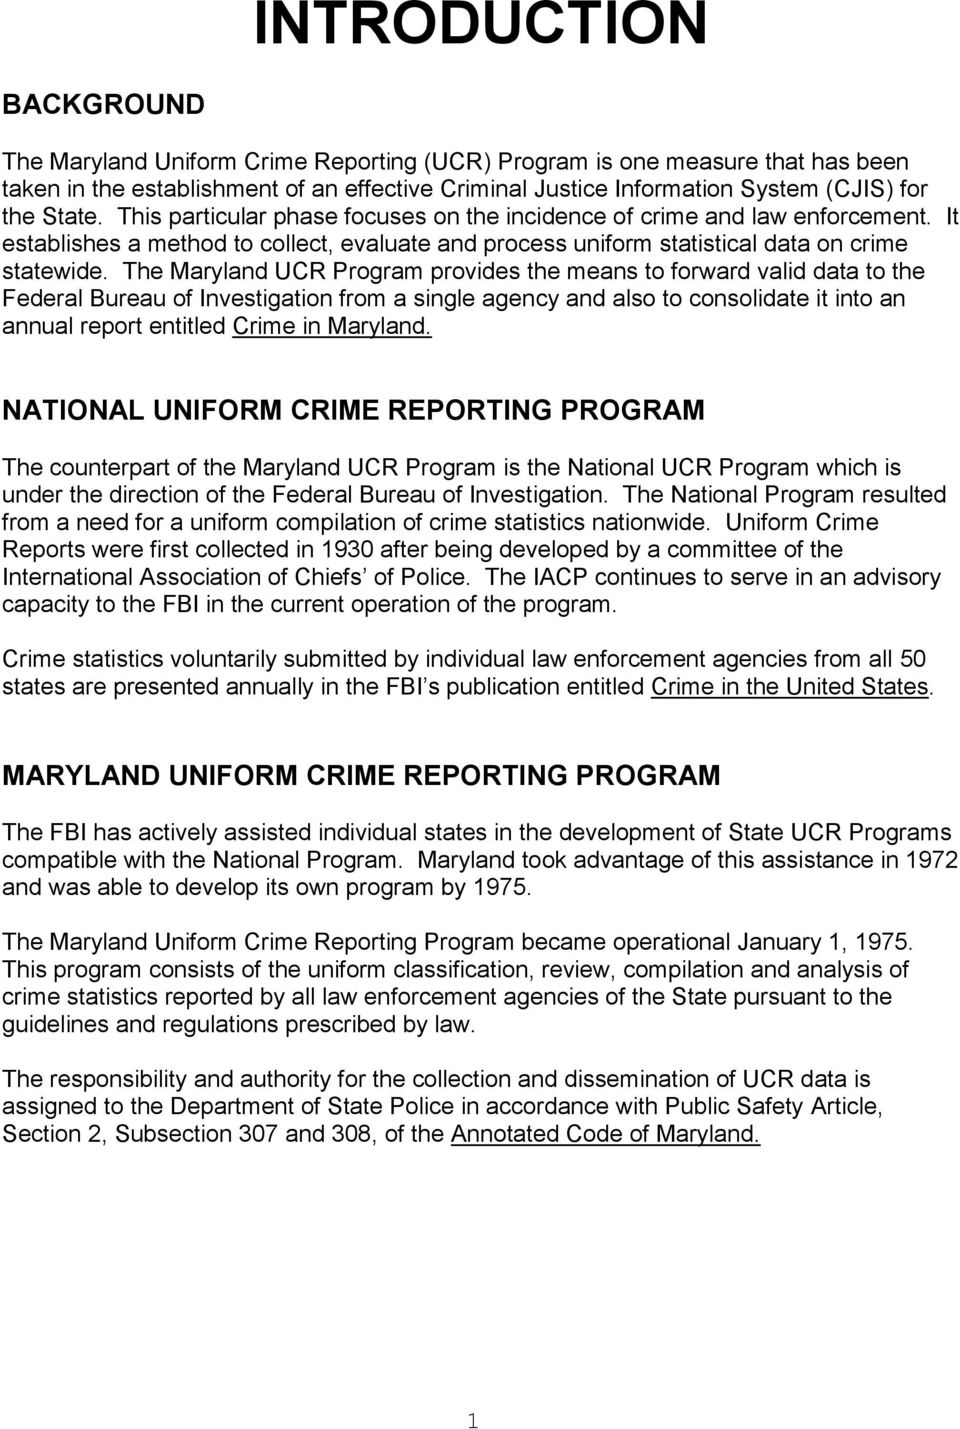 The Maryland UCR Program provides the means to forward valid data to the Federal Bureau of Investigation from a single agency and also to consolidate it into an annual report entitled Crime in